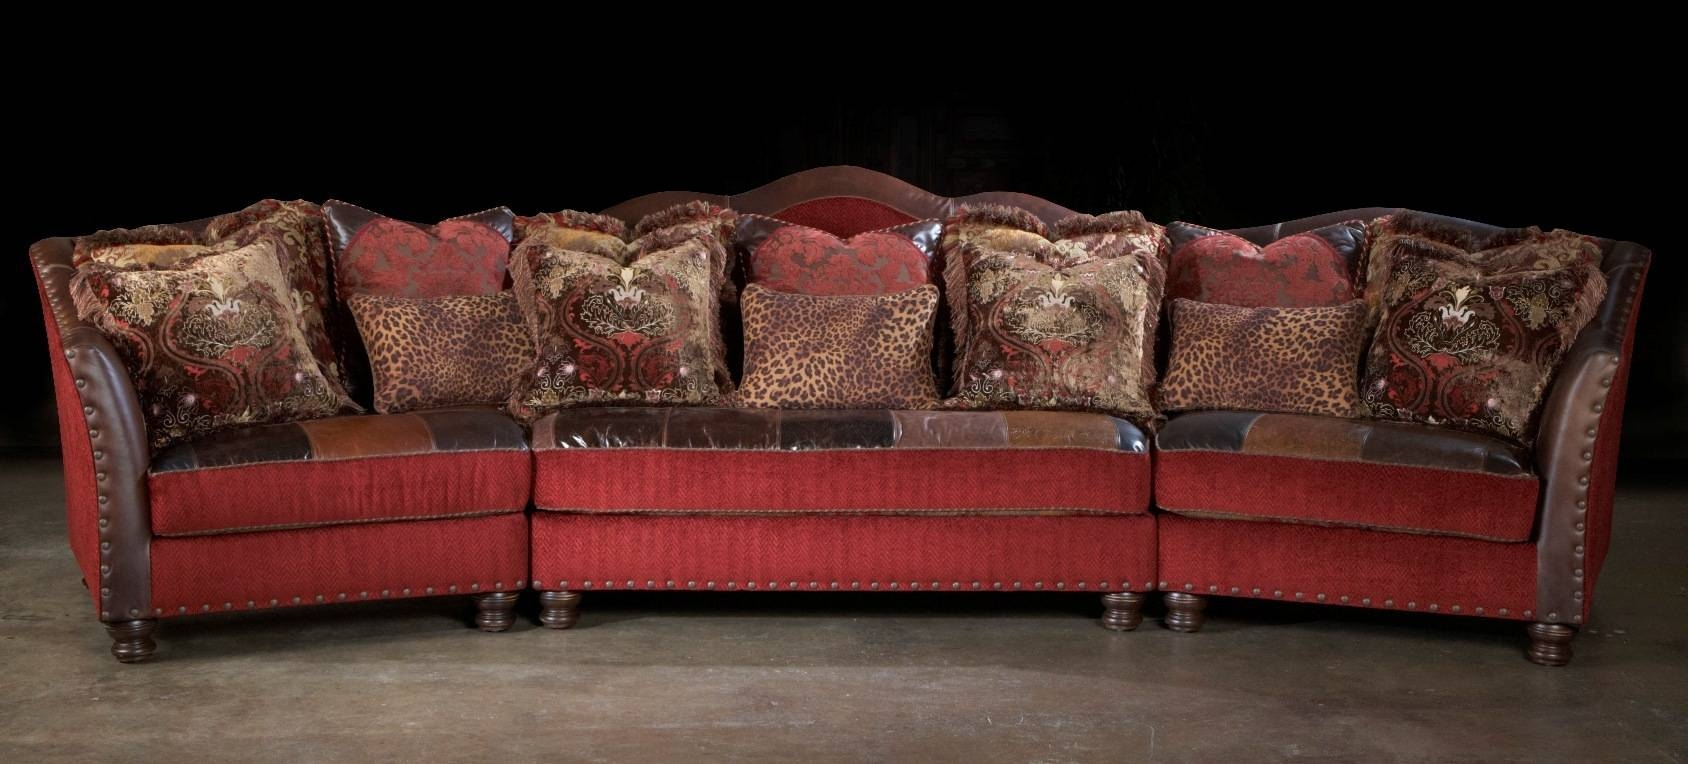 Elegant High End Leather Sectional Sofa 67 For Corinthian throughout Corinthian Sectional Sofas (Image 17 of 30)